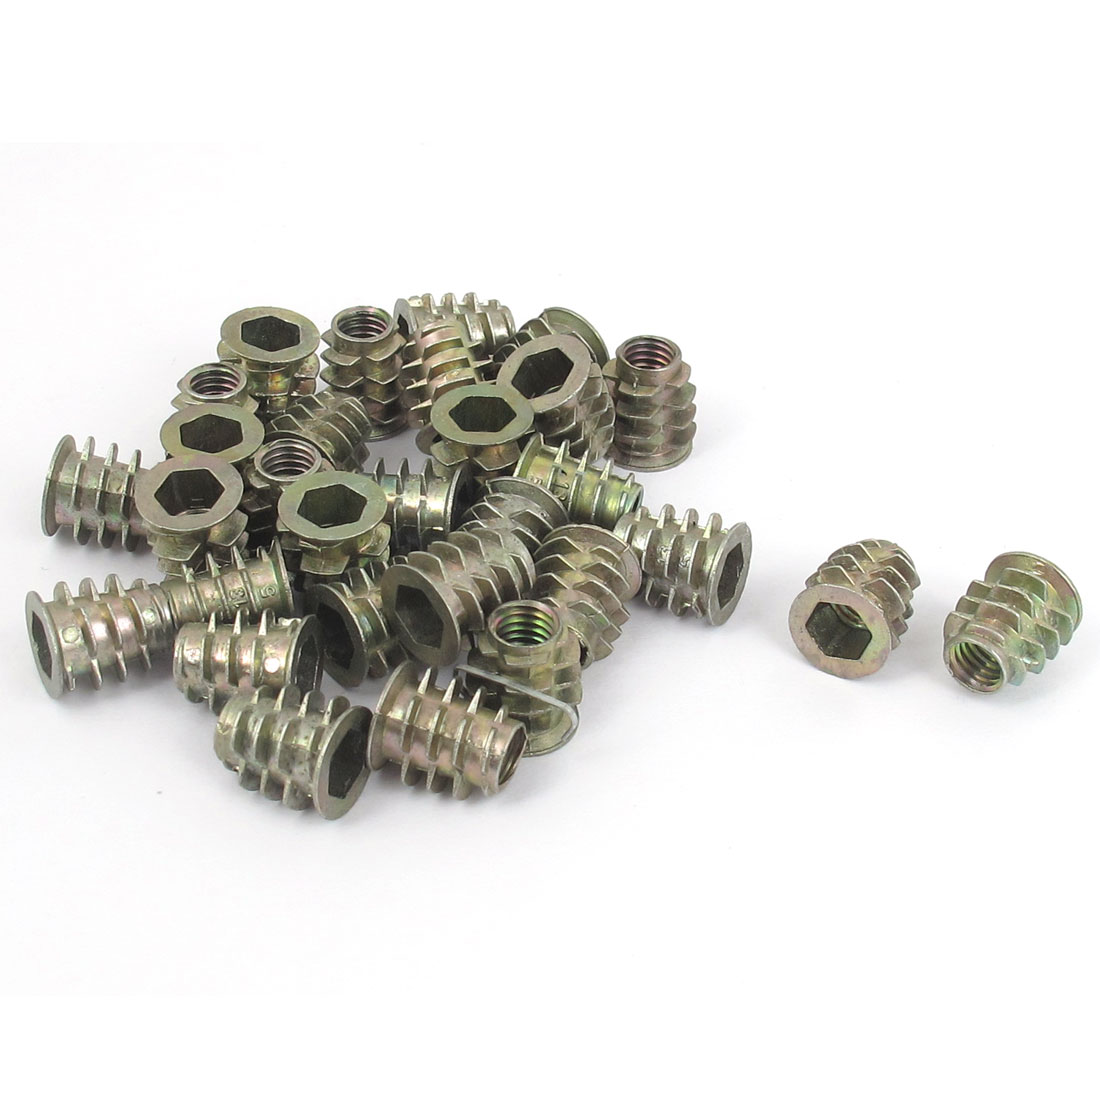 30 Pcs M6x13mm Zinc Plated Hex Socket Screw in Thread Insert Nut for Wood